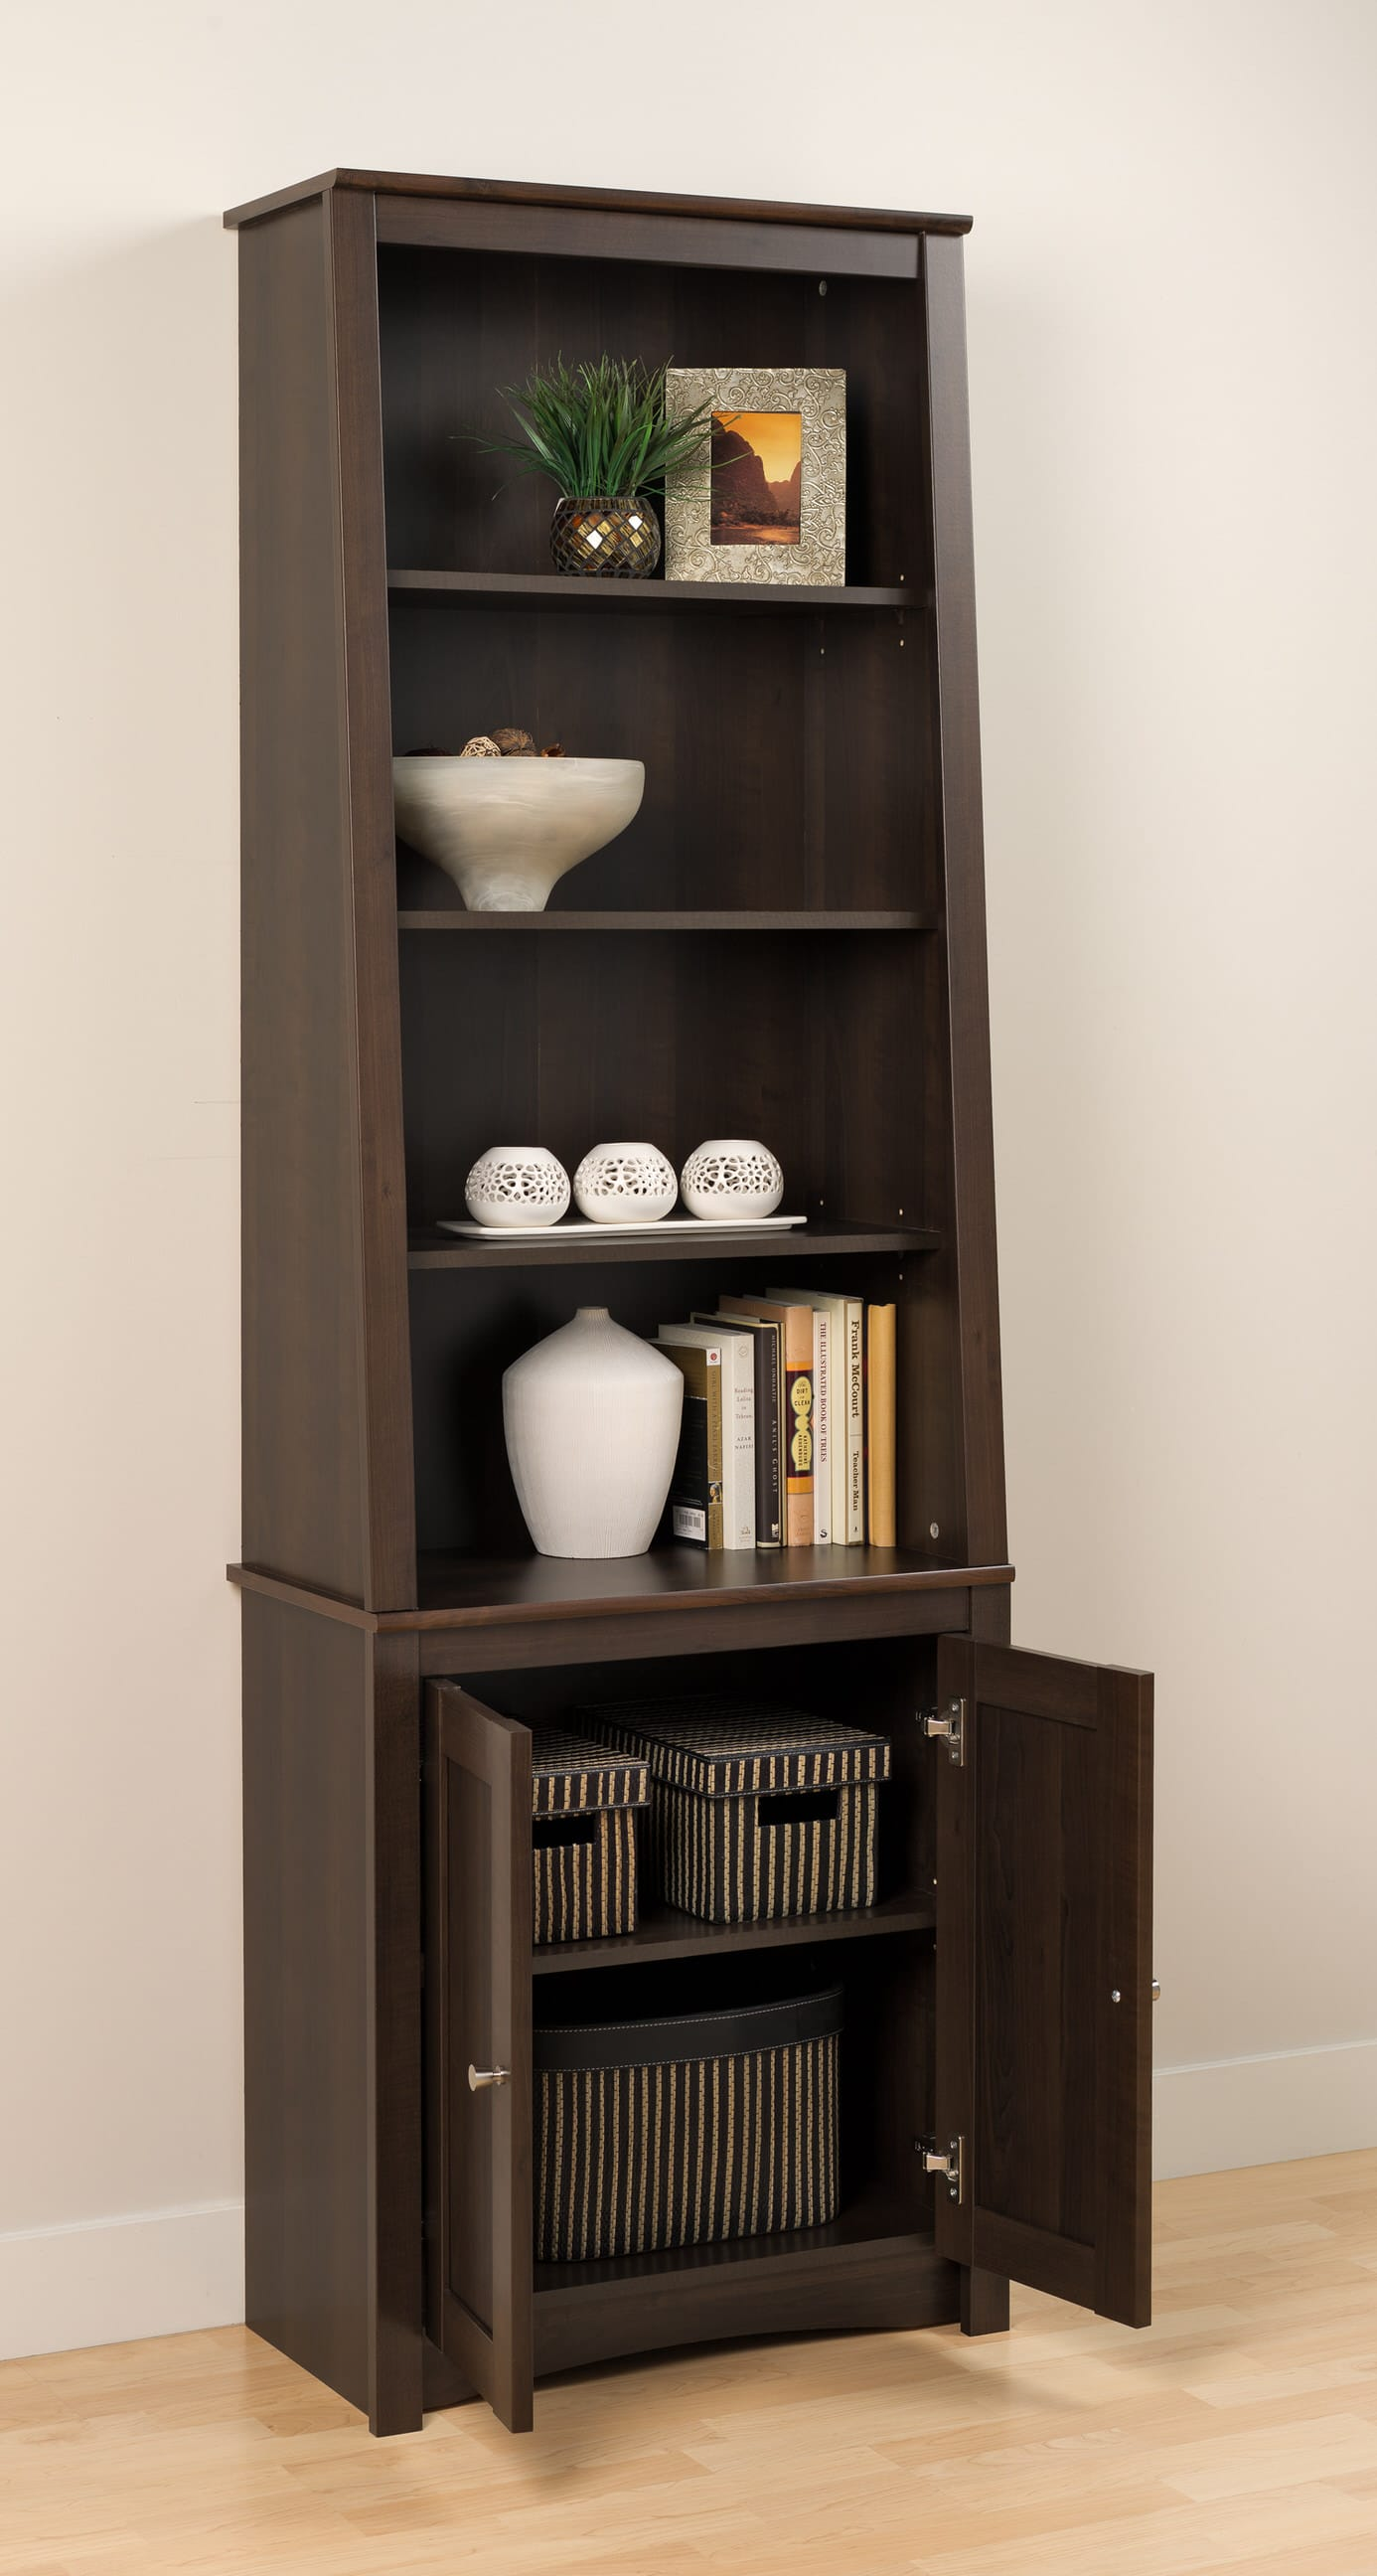 tall slant back bookcase w doors by prepac. Black Bedroom Furniture Sets. Home Design Ideas